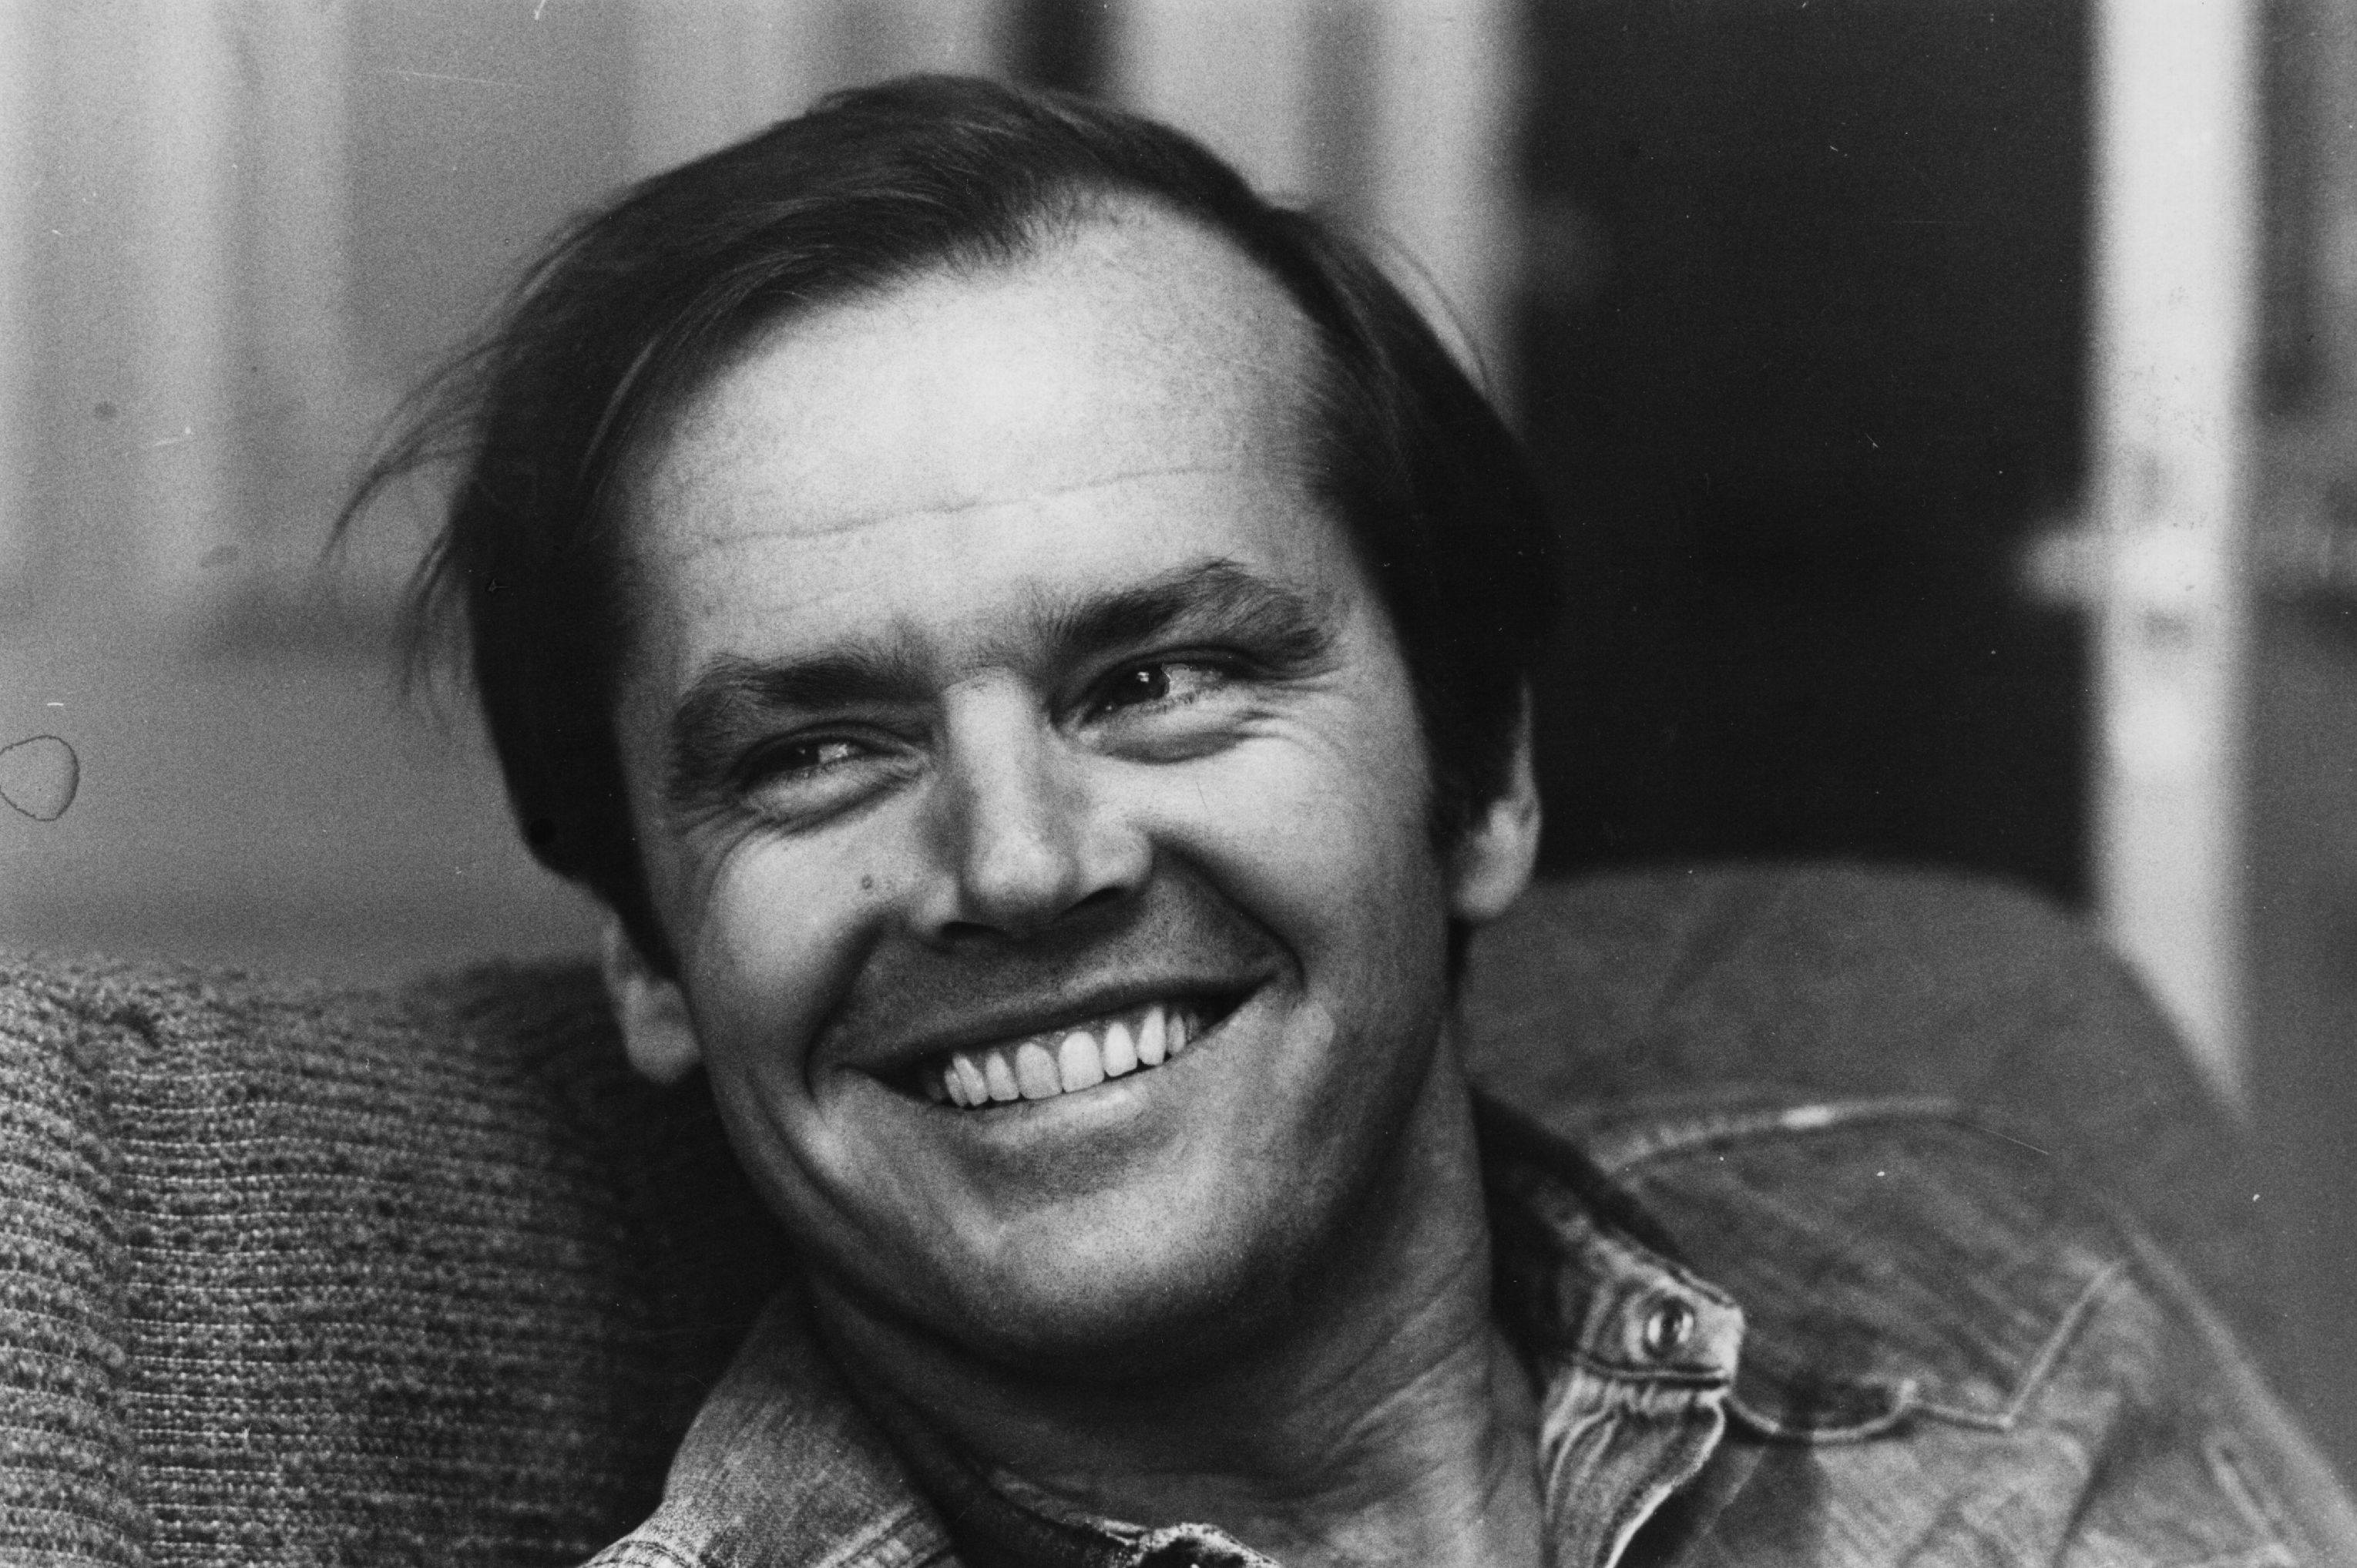 Jack Nicholson S Life In Photos Pictures Of Jack Nicholson To connect with raymond, sign up for facebook today. pictures of jack nicholson